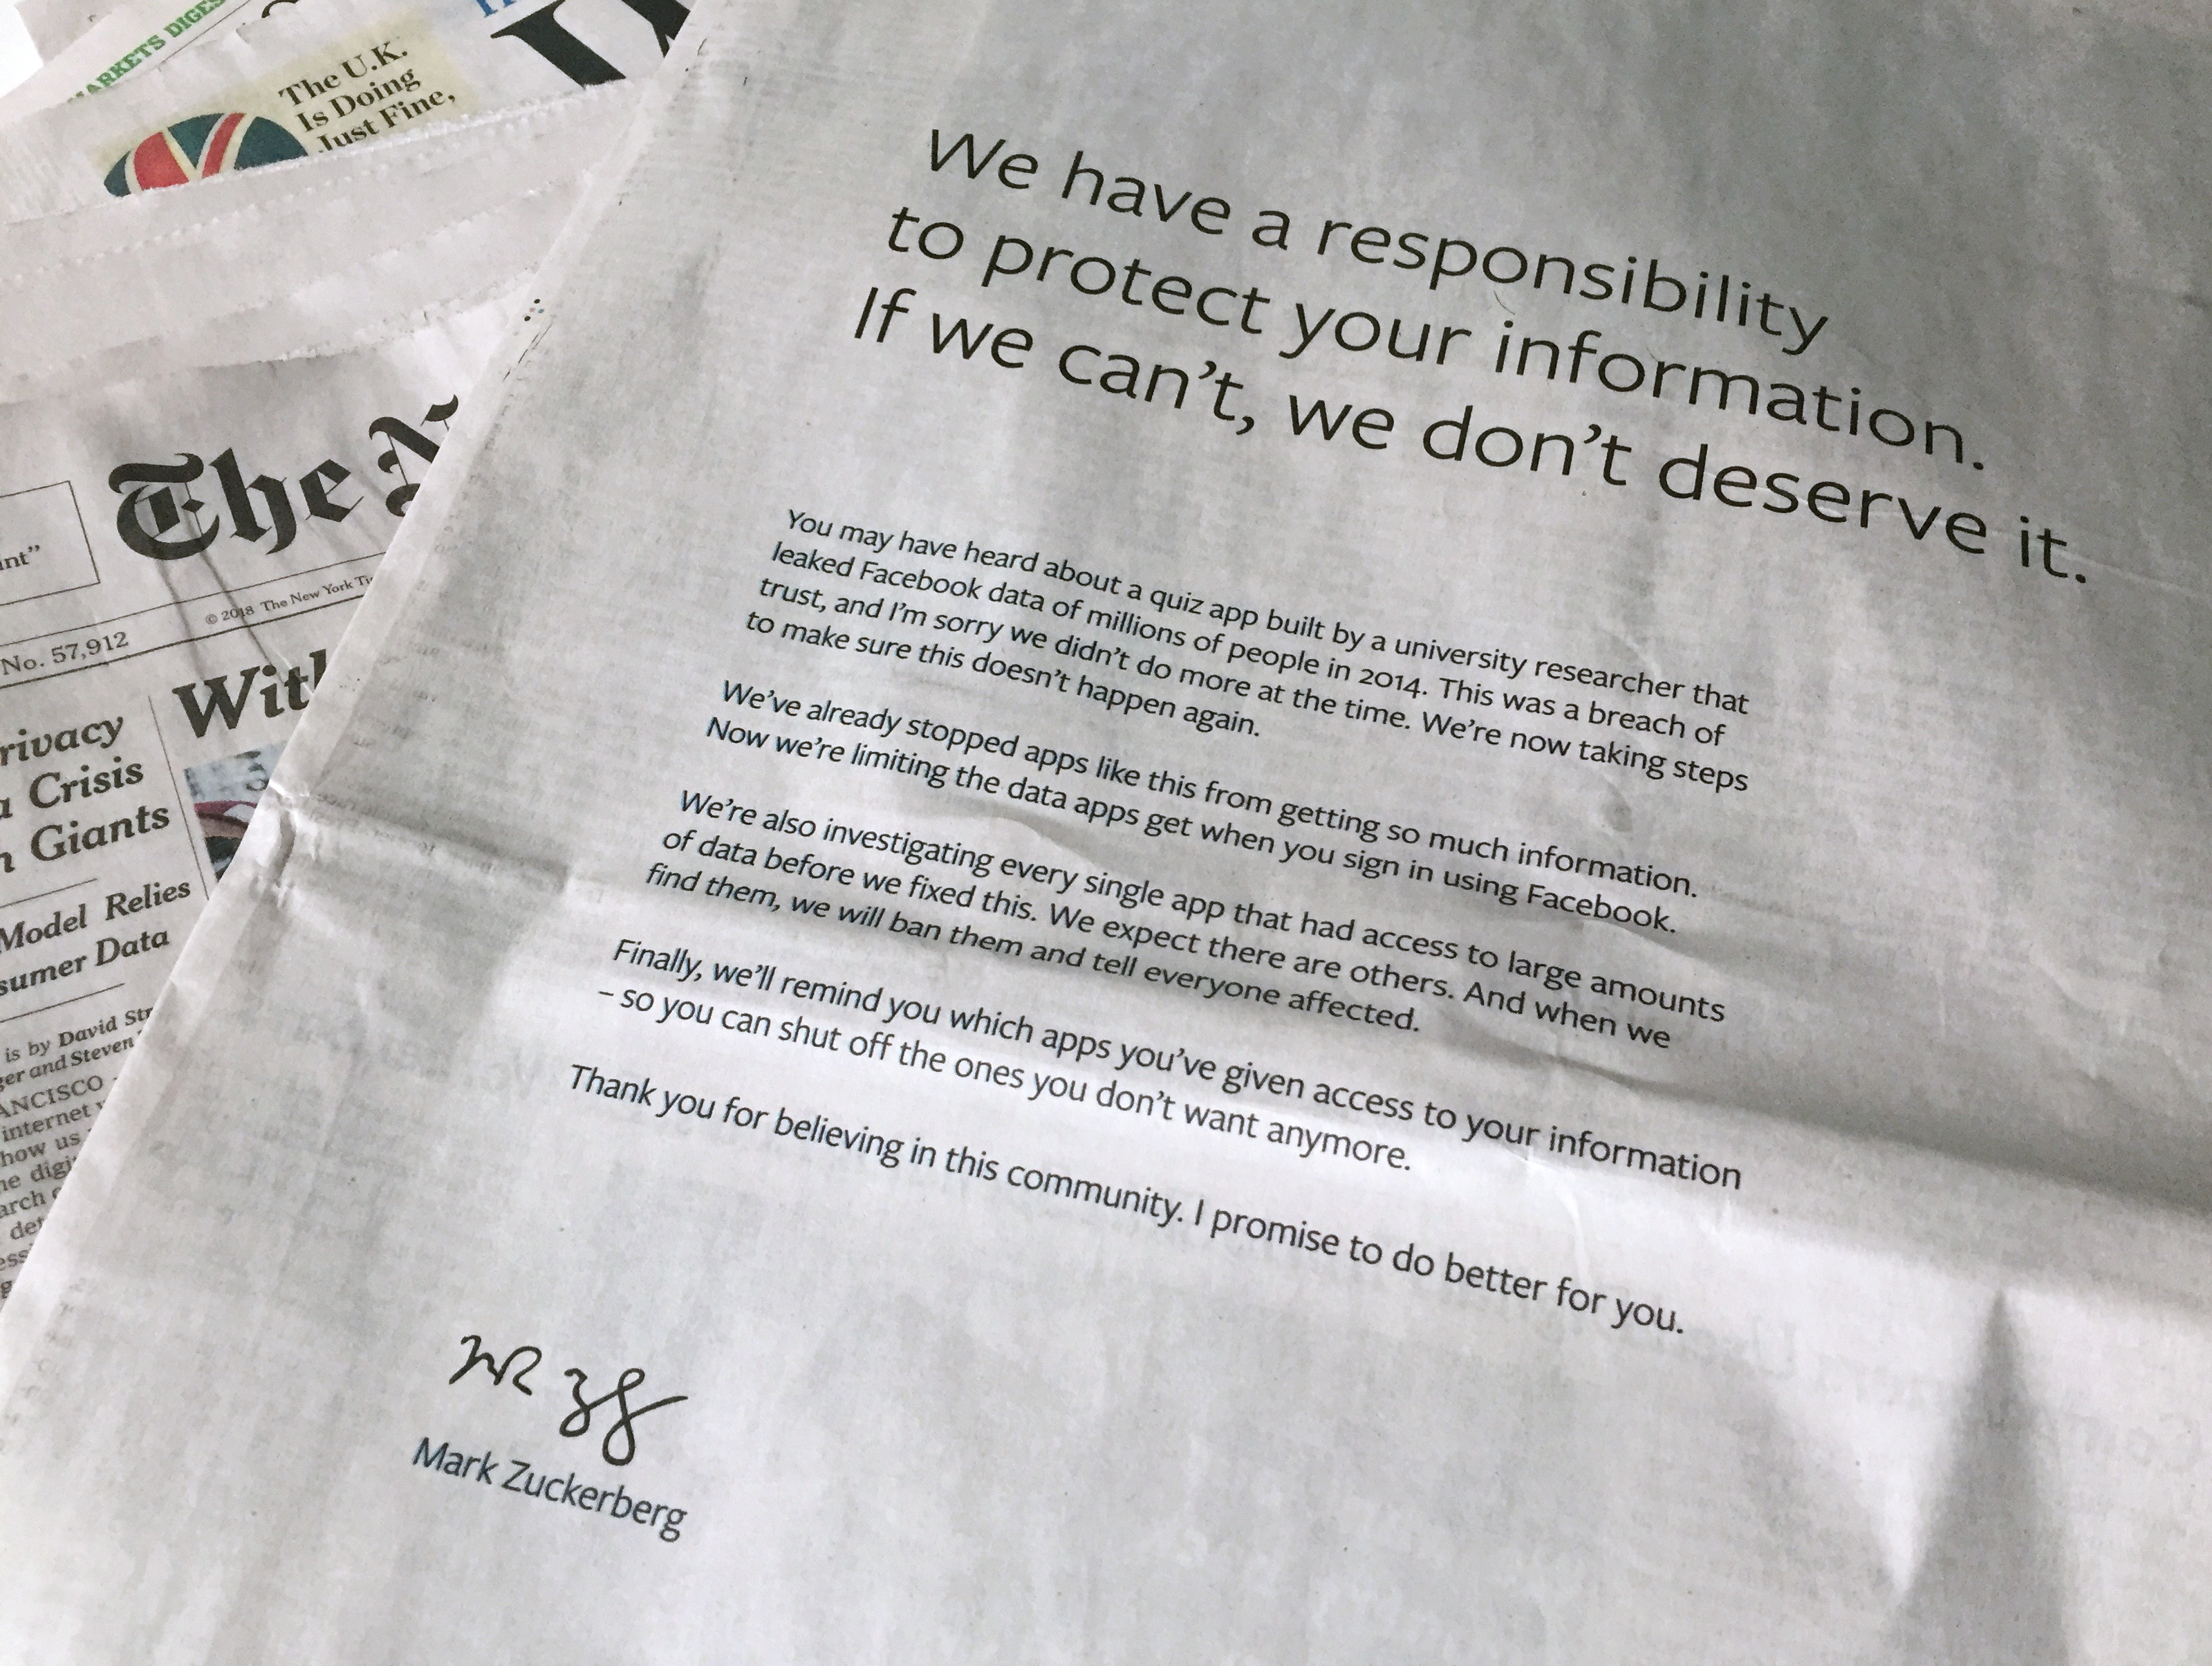 An advertisement in The New York Times is displayed on Sunday, March 25, 2018, in New York. Facebook's CEO apologized for the Cambridge Analytica scandal with ads in multiple U.S. and British newspapers Sunday.